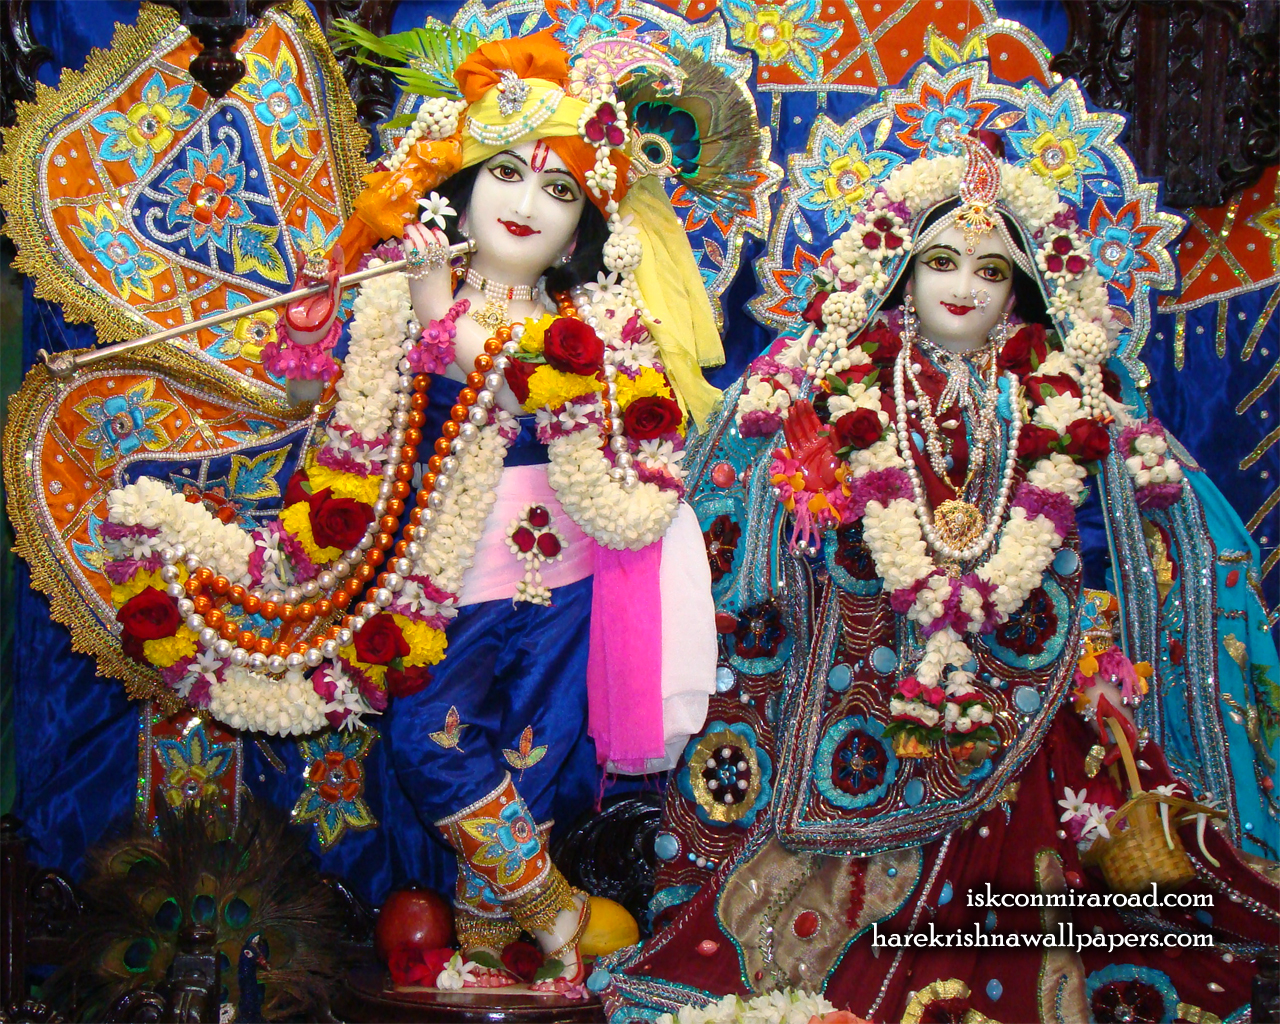 Sri Sri Radha Giridhari Wallpaper (018) Size 1280x1024 Download